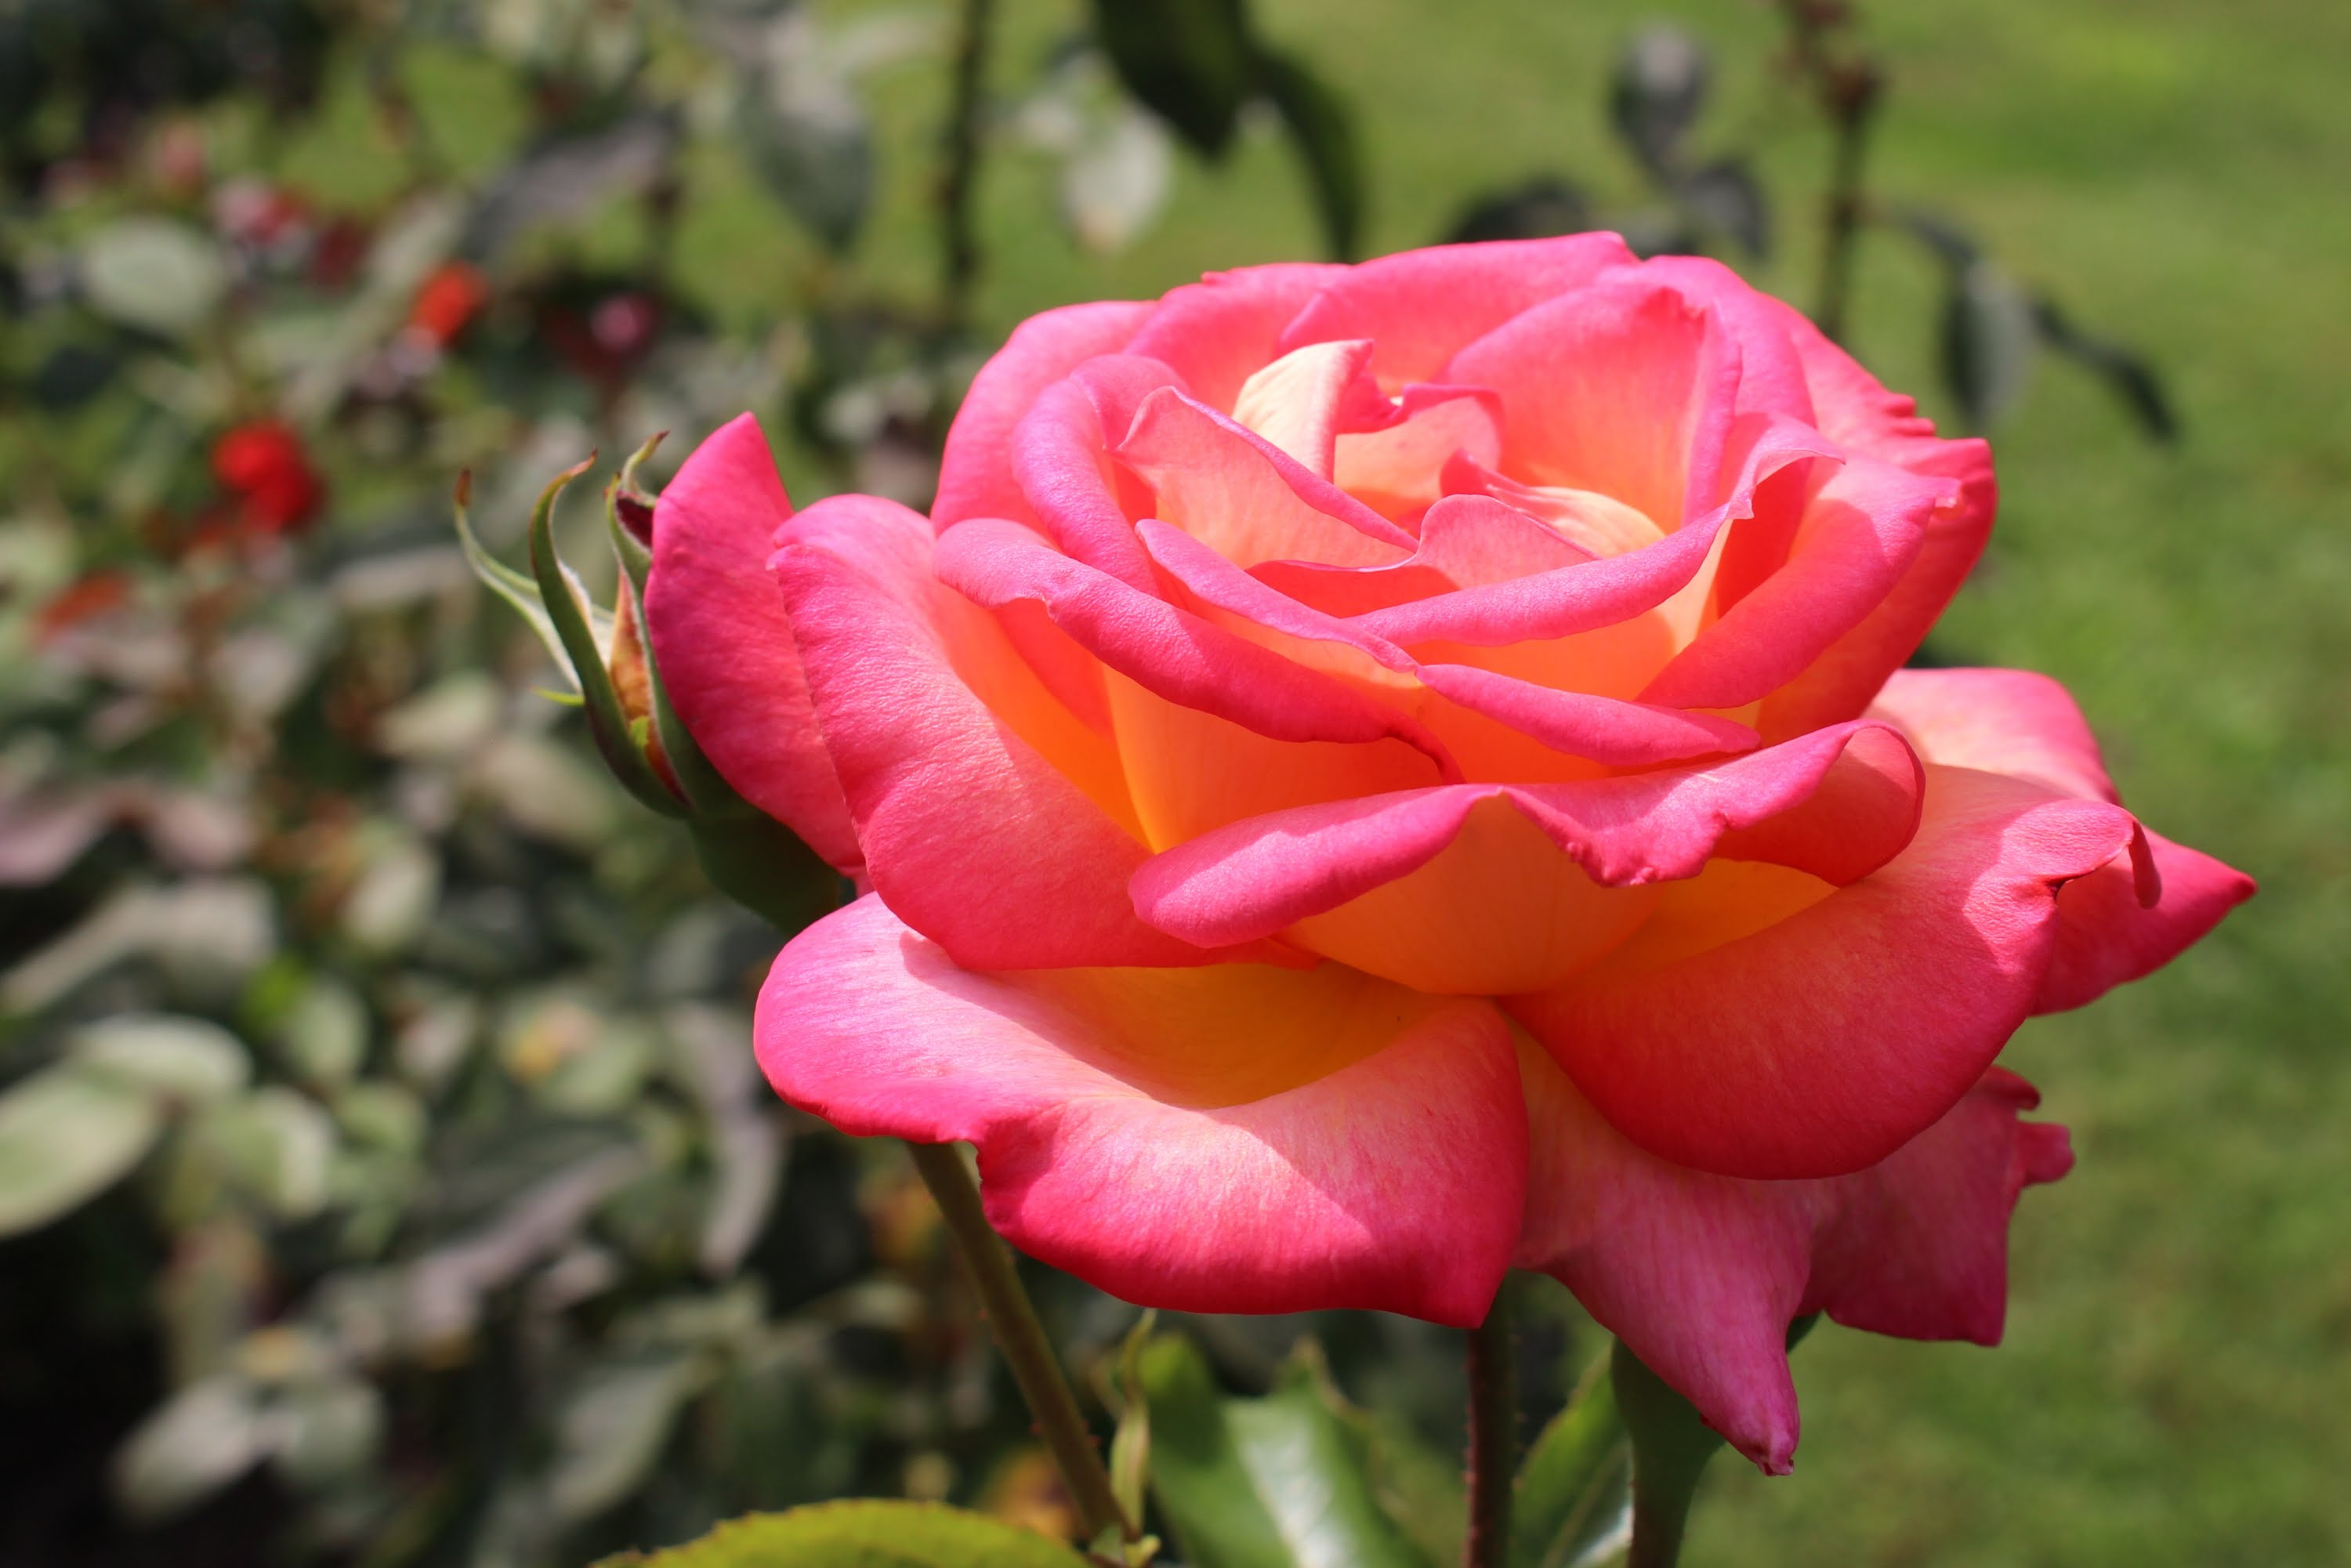 Roses In Garden: How To Grow The Best Roses In Your Garden